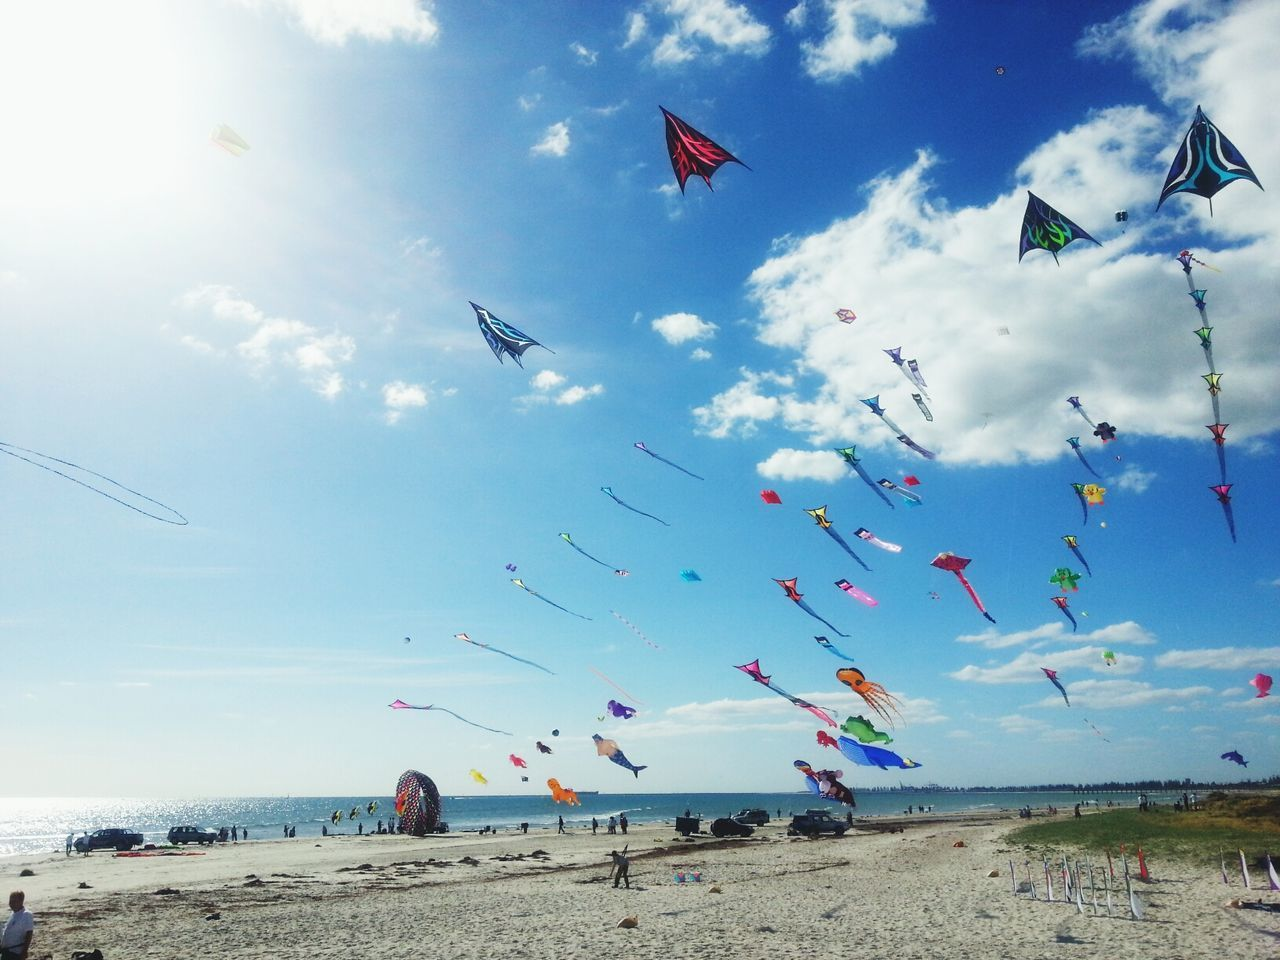 Kites being flown at beach